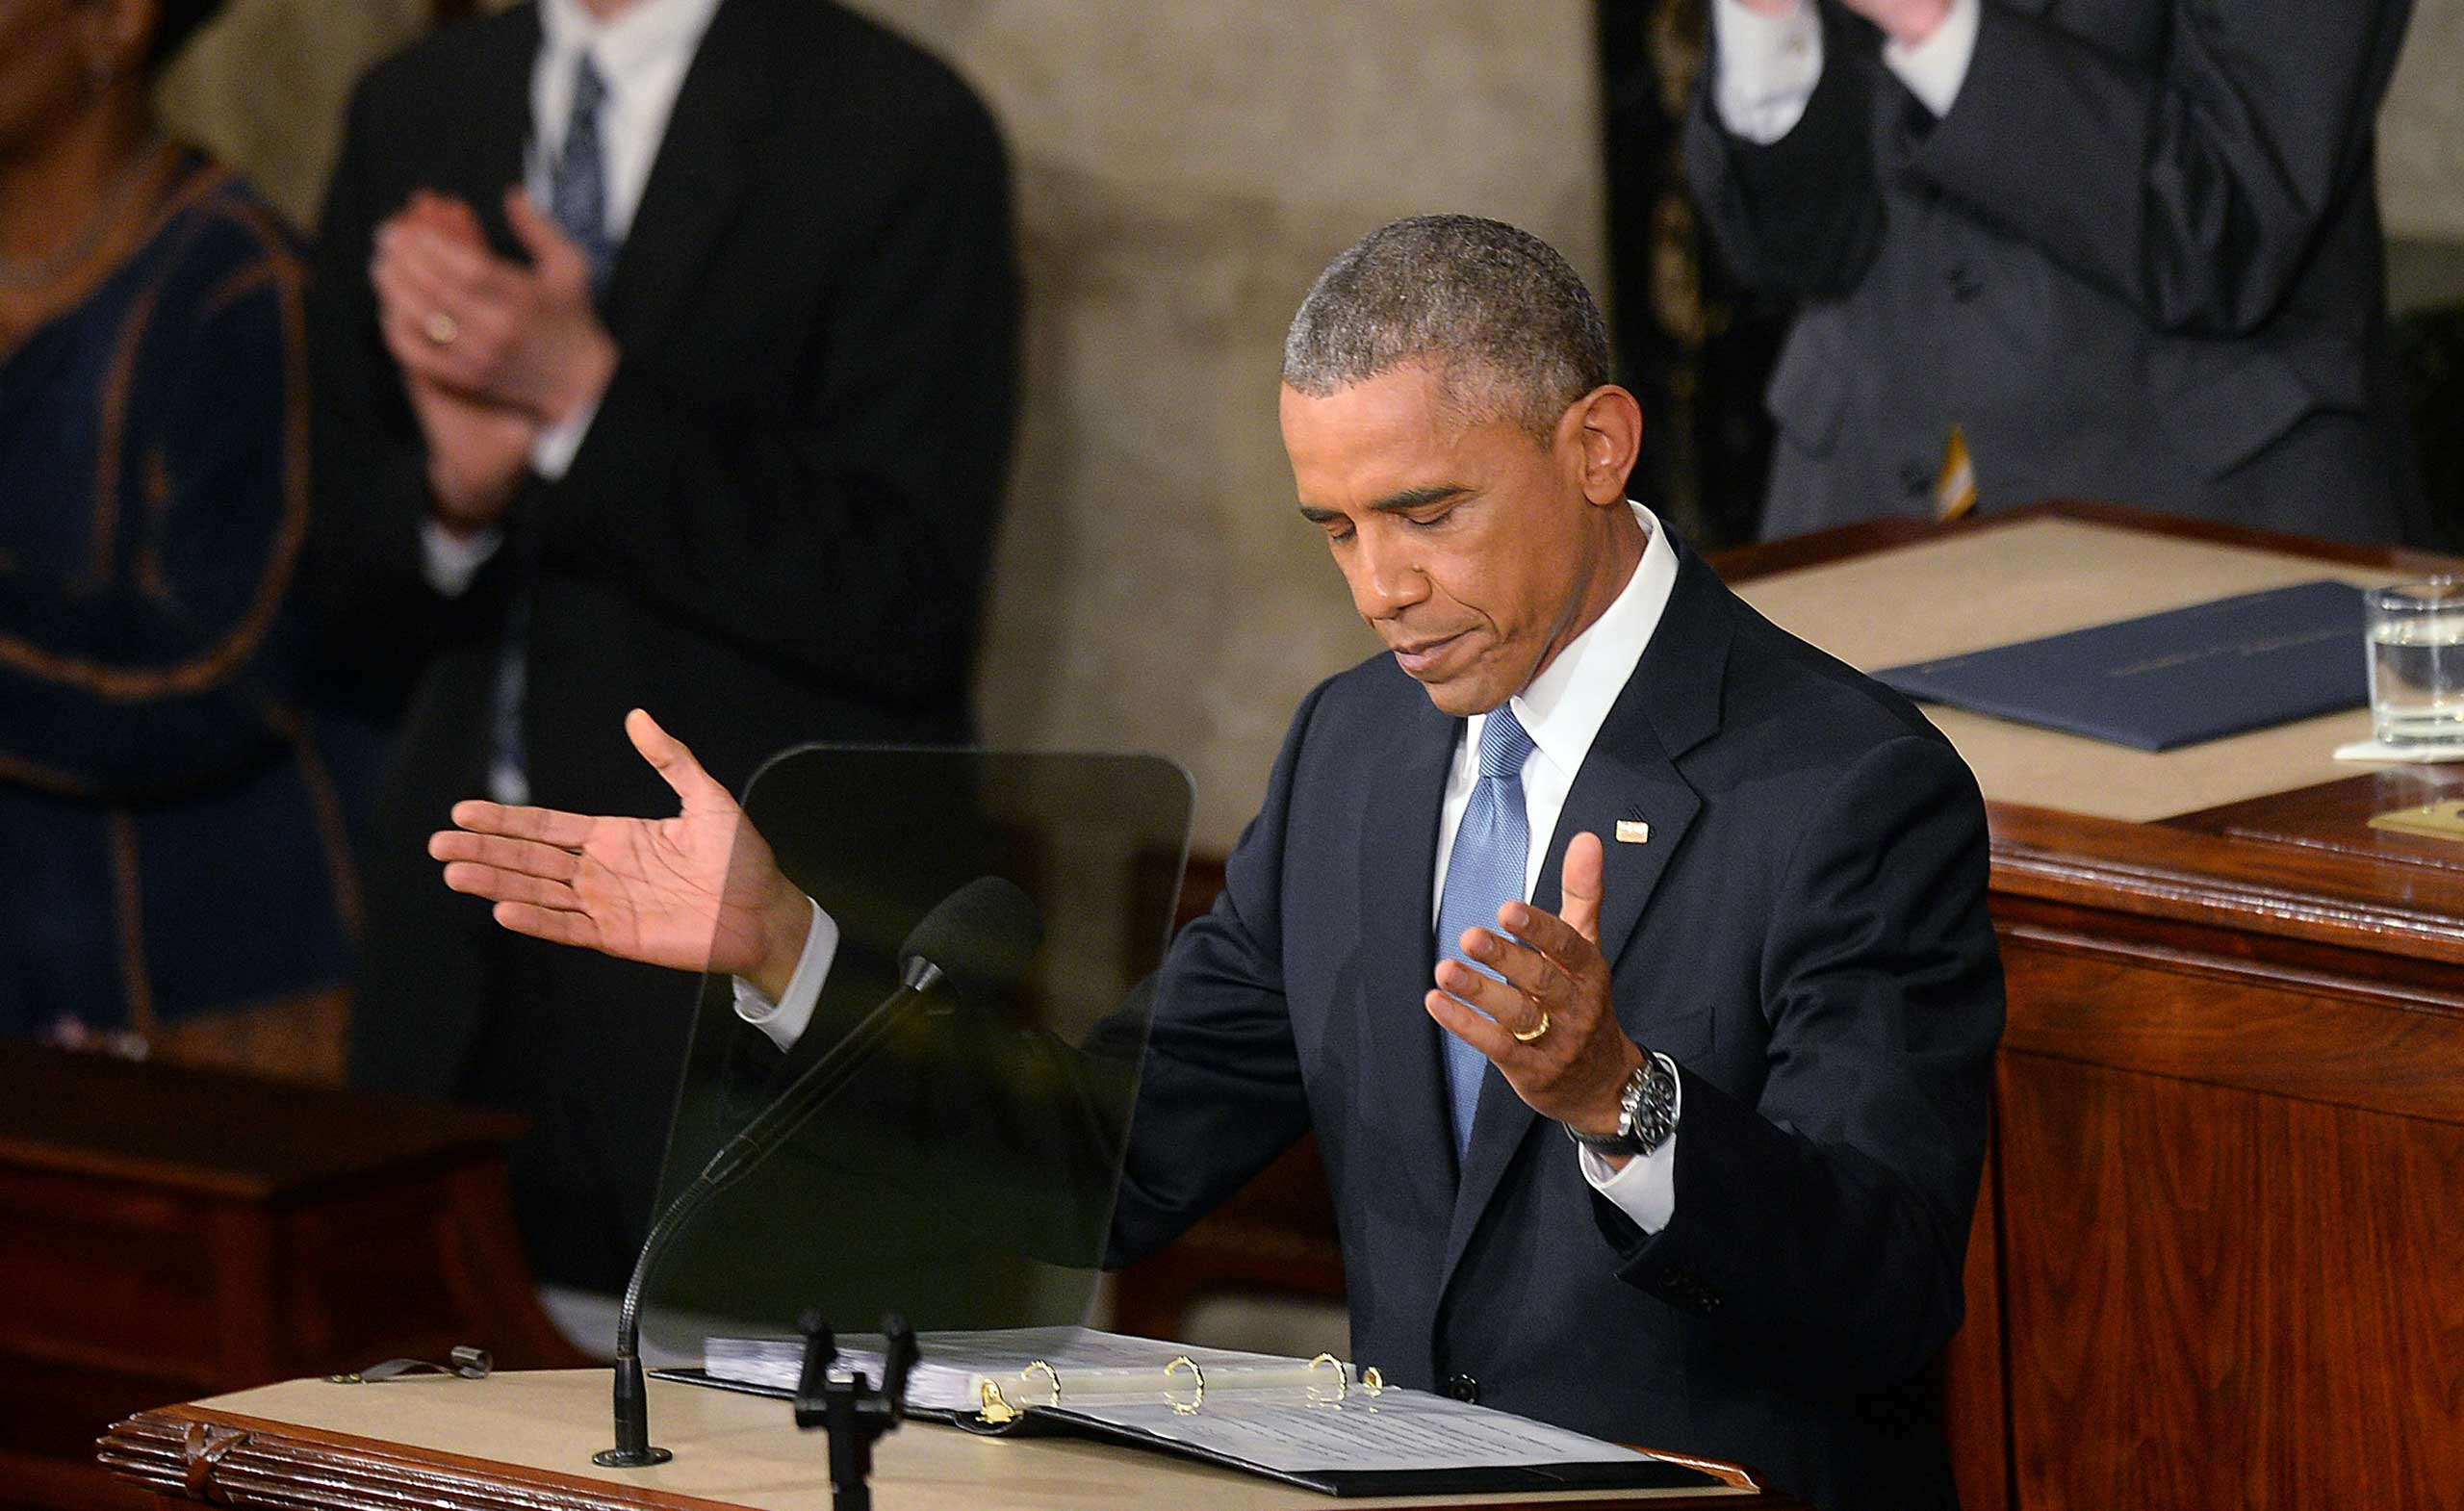 US President Barack Obama delivers his sixth State Of The Union address to the nation at the US Capitol in Washington, Jan. 20, 2015.